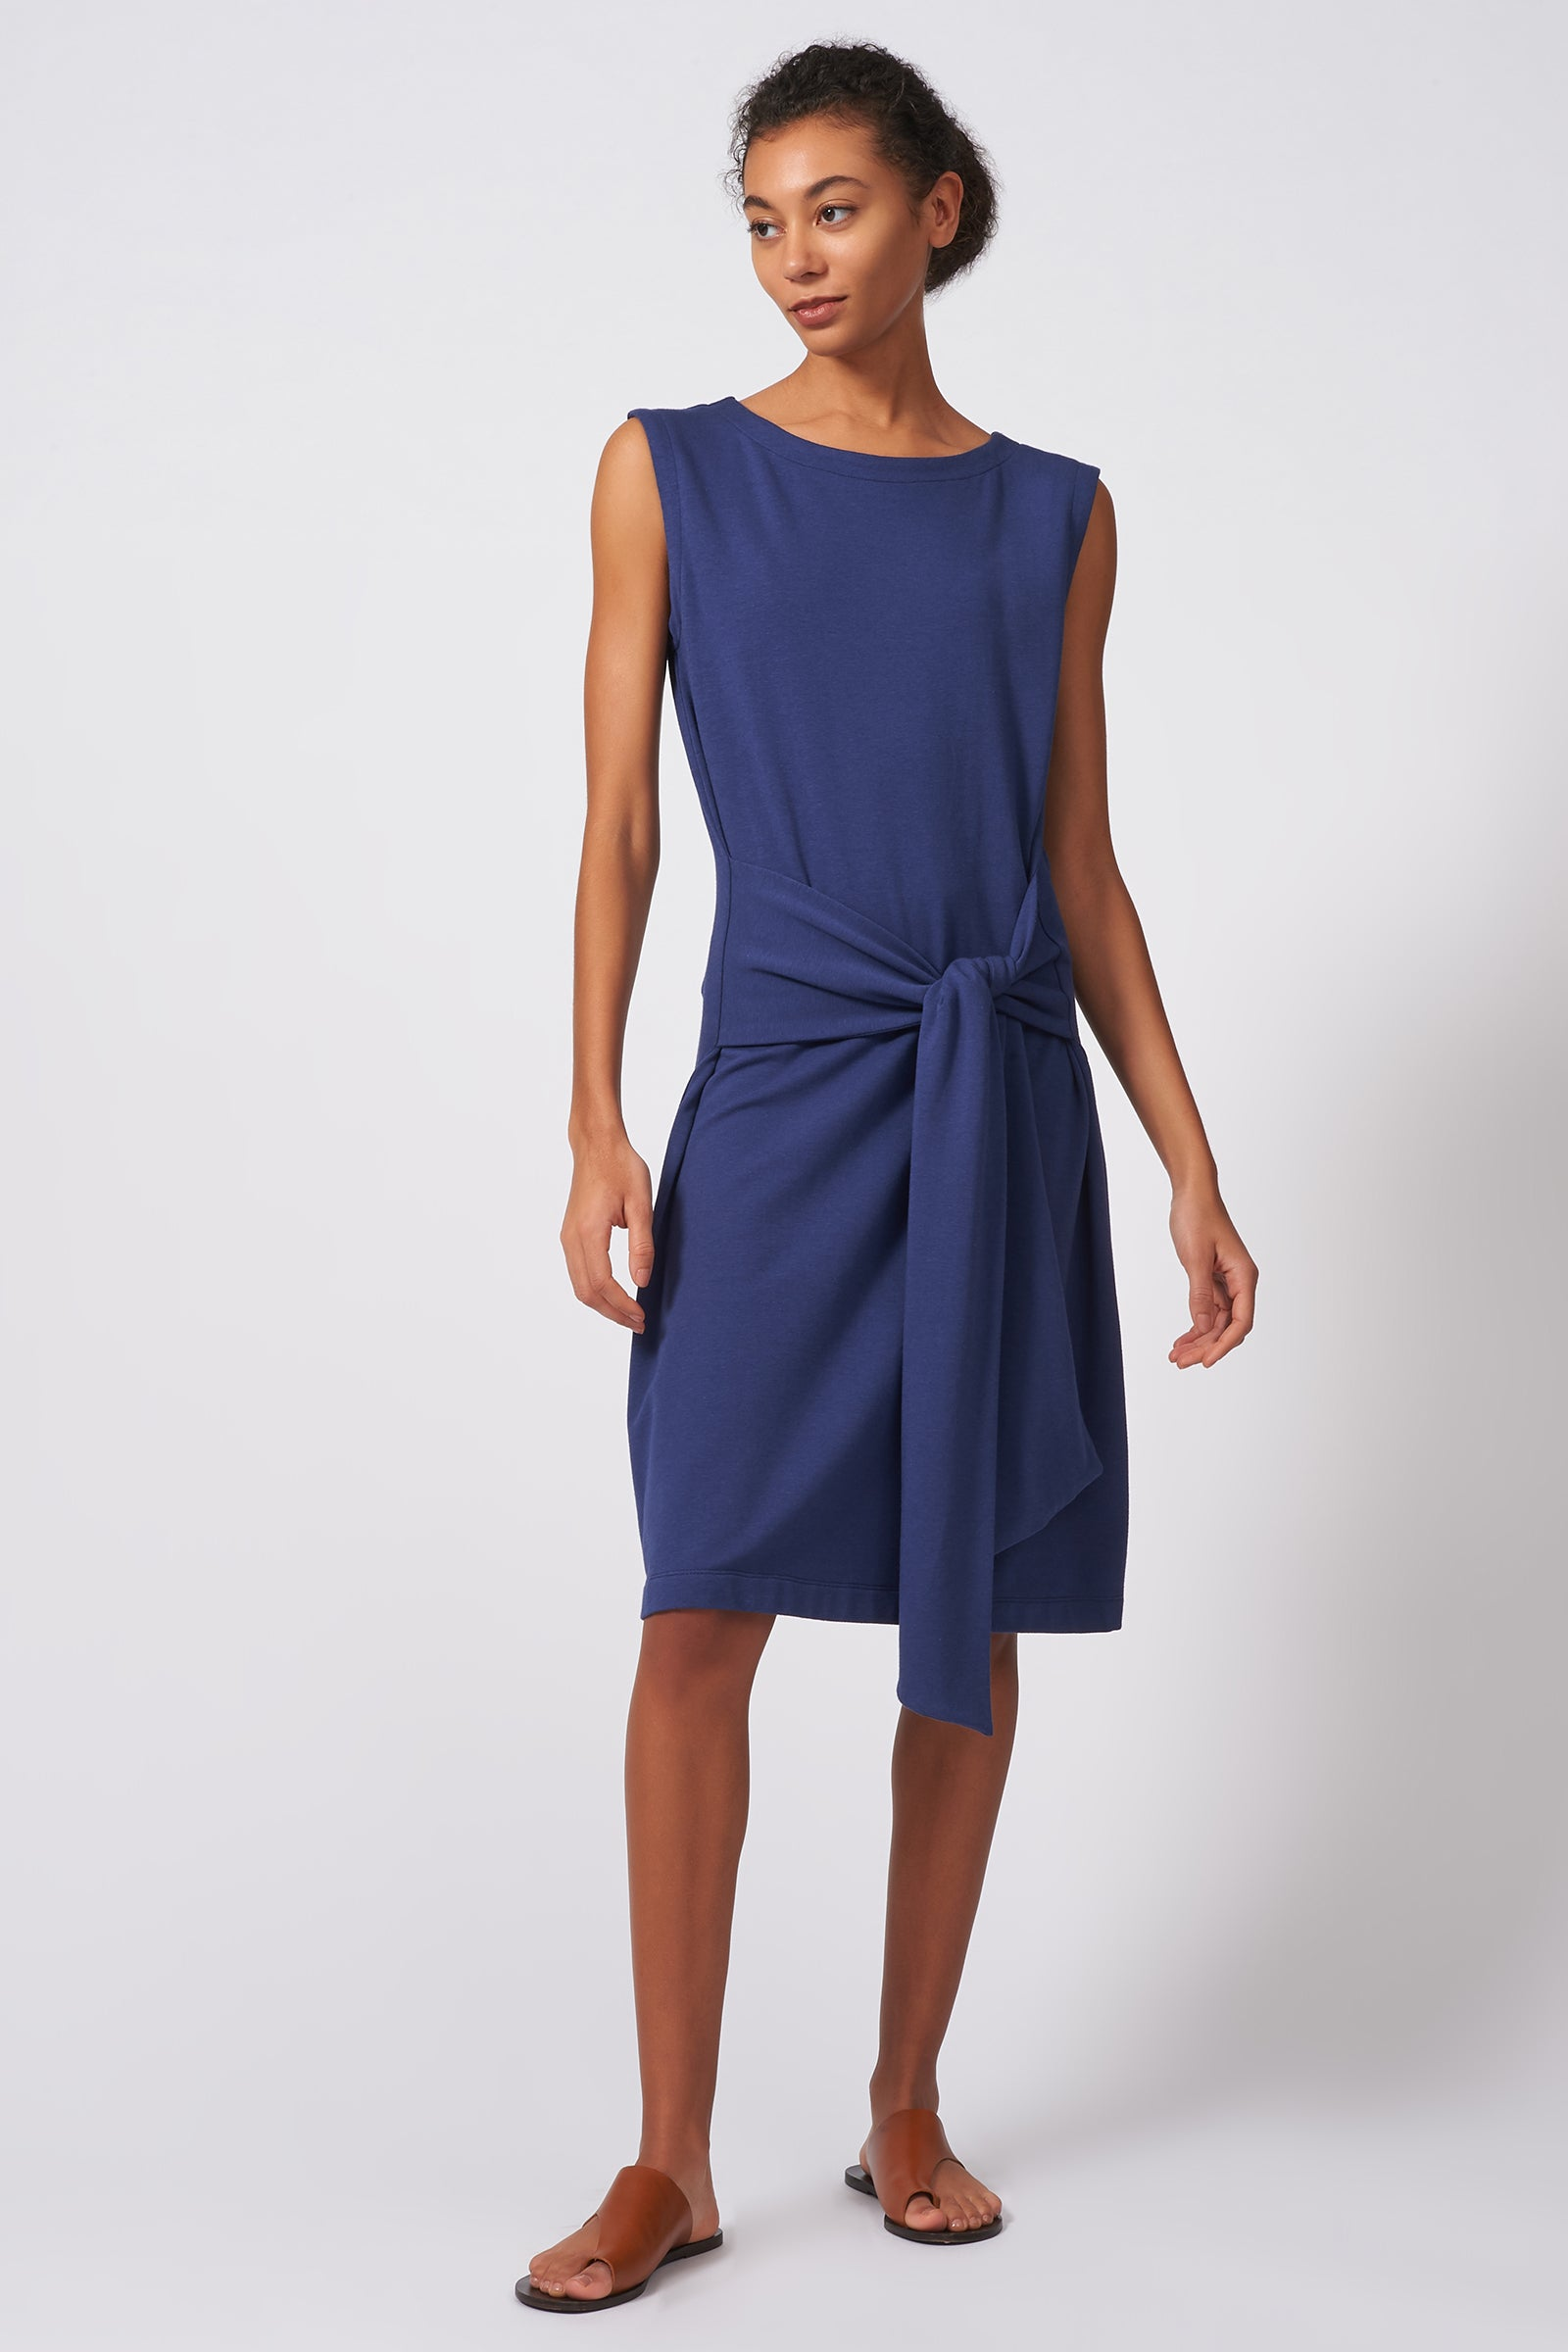 Kal Rieman Tie Waist Dress in Blue on Model Full Front View